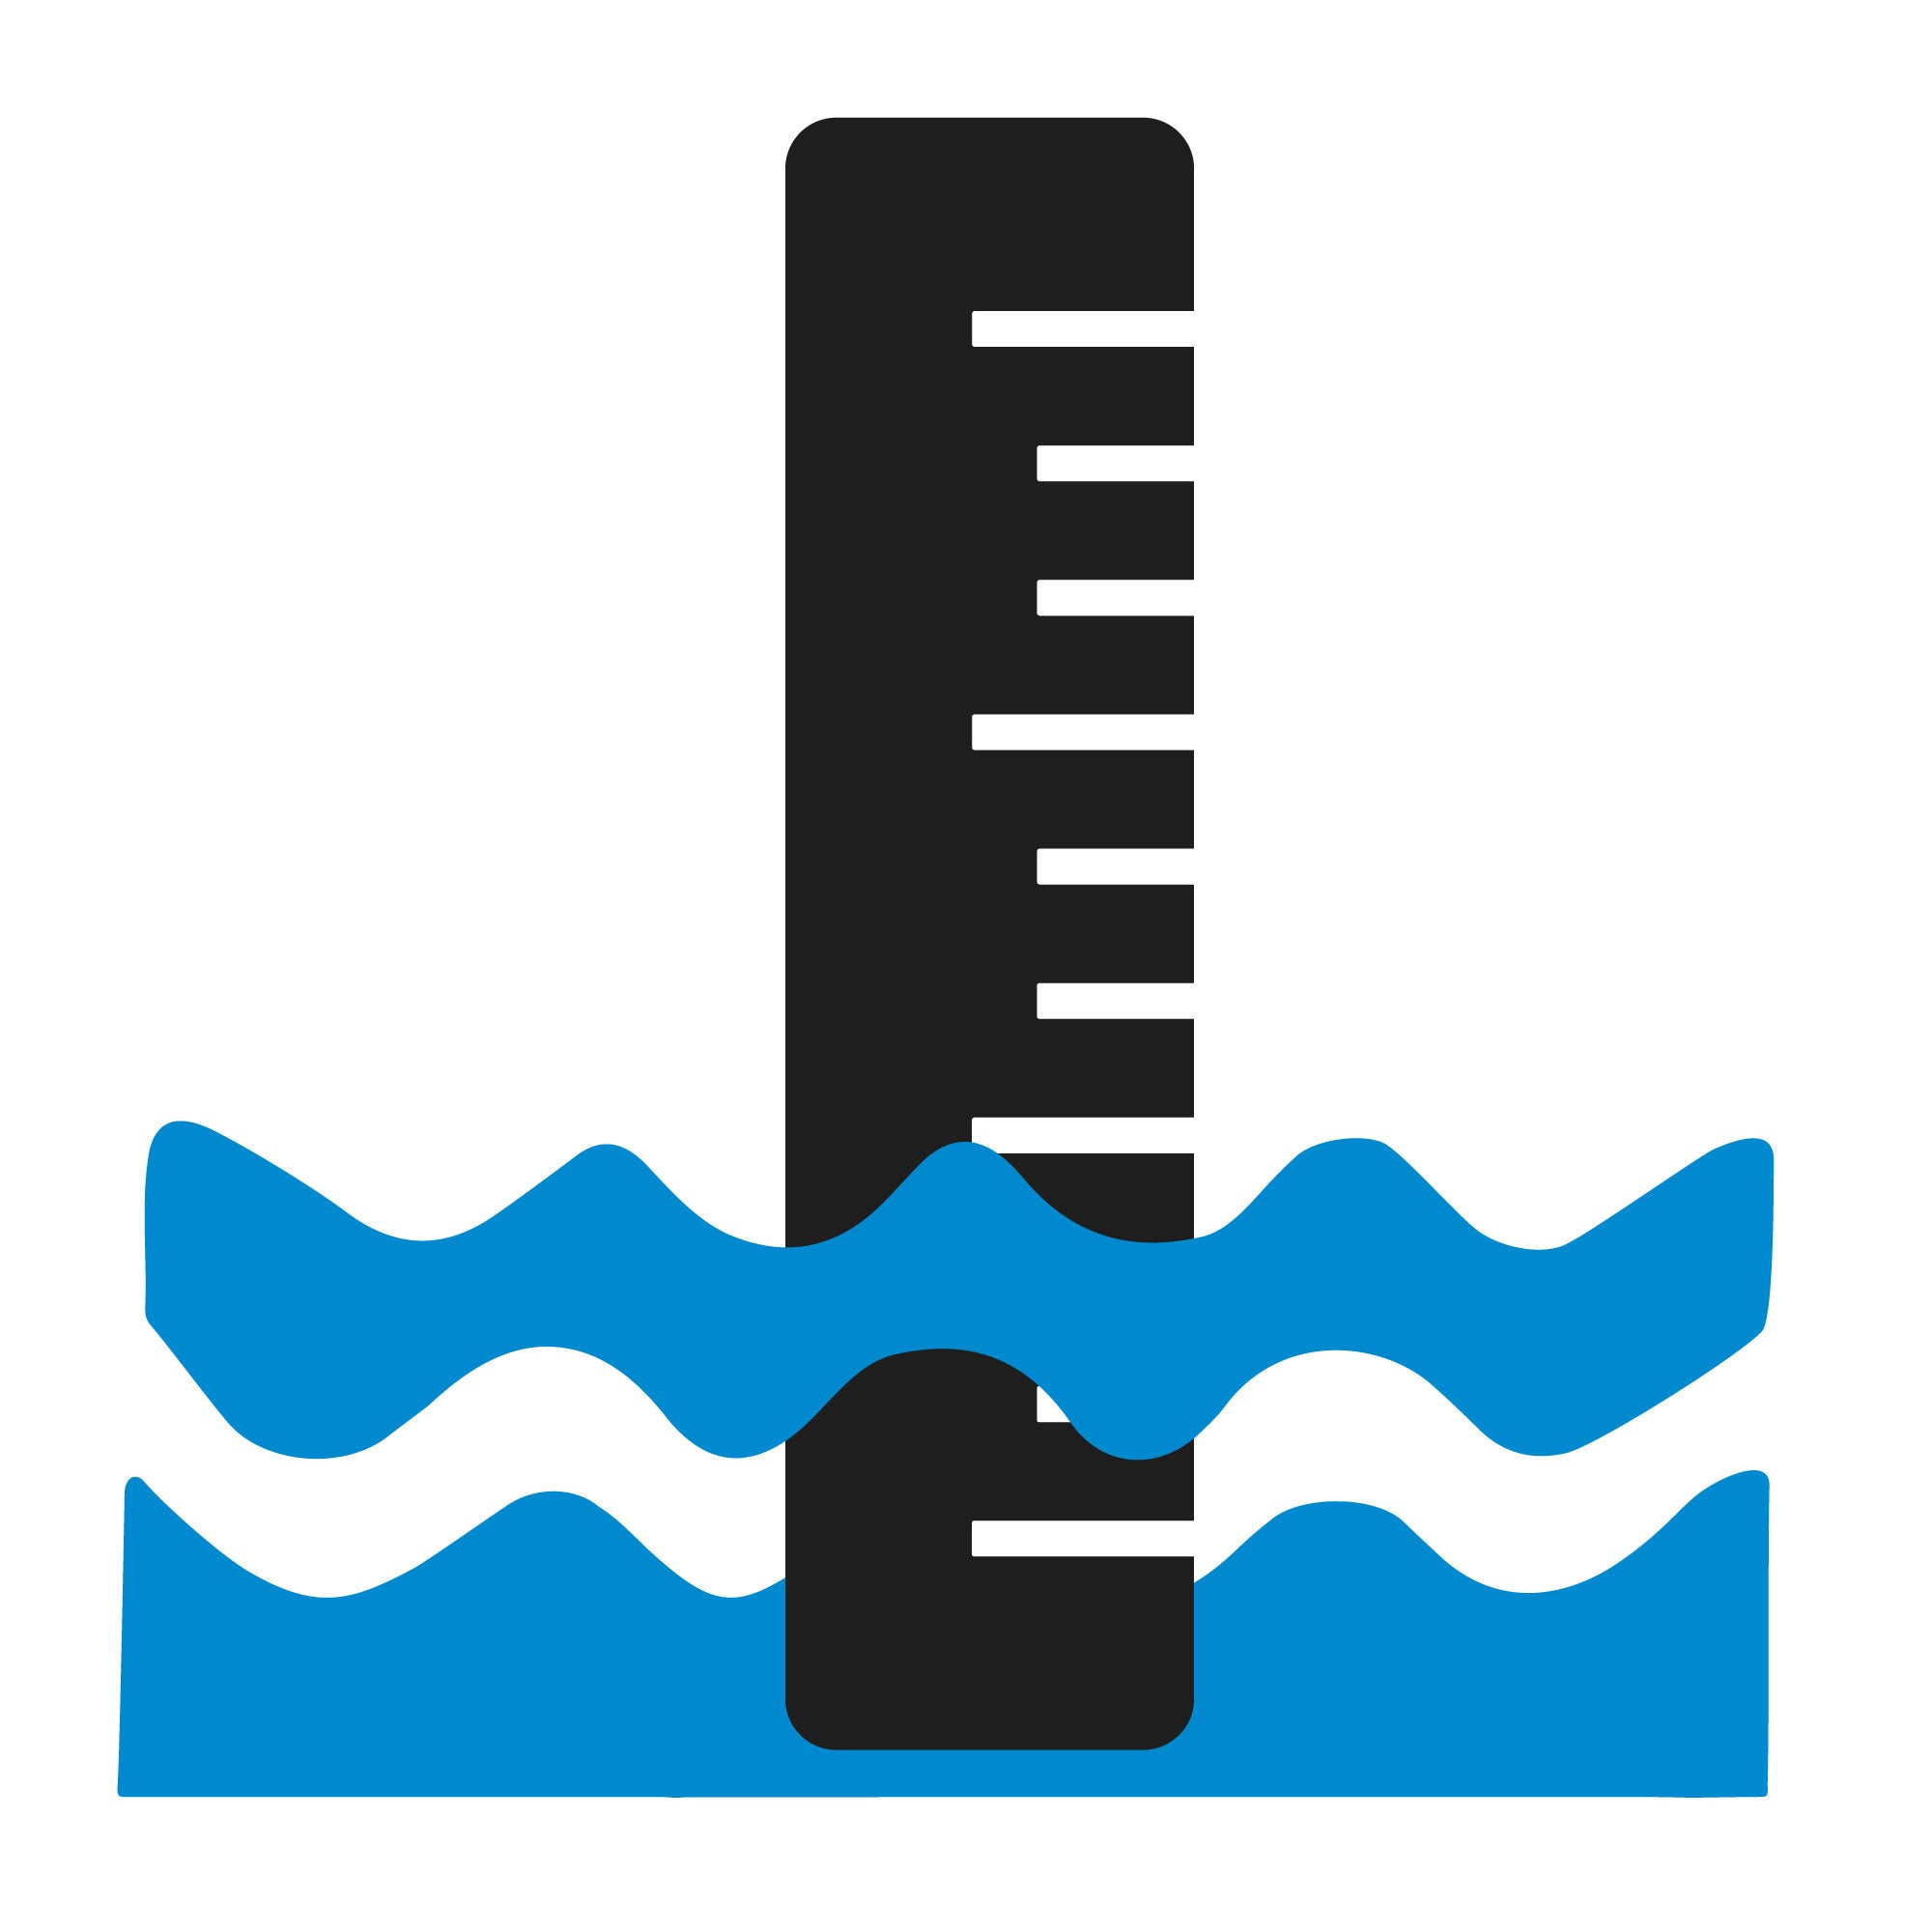 Measure water level icon